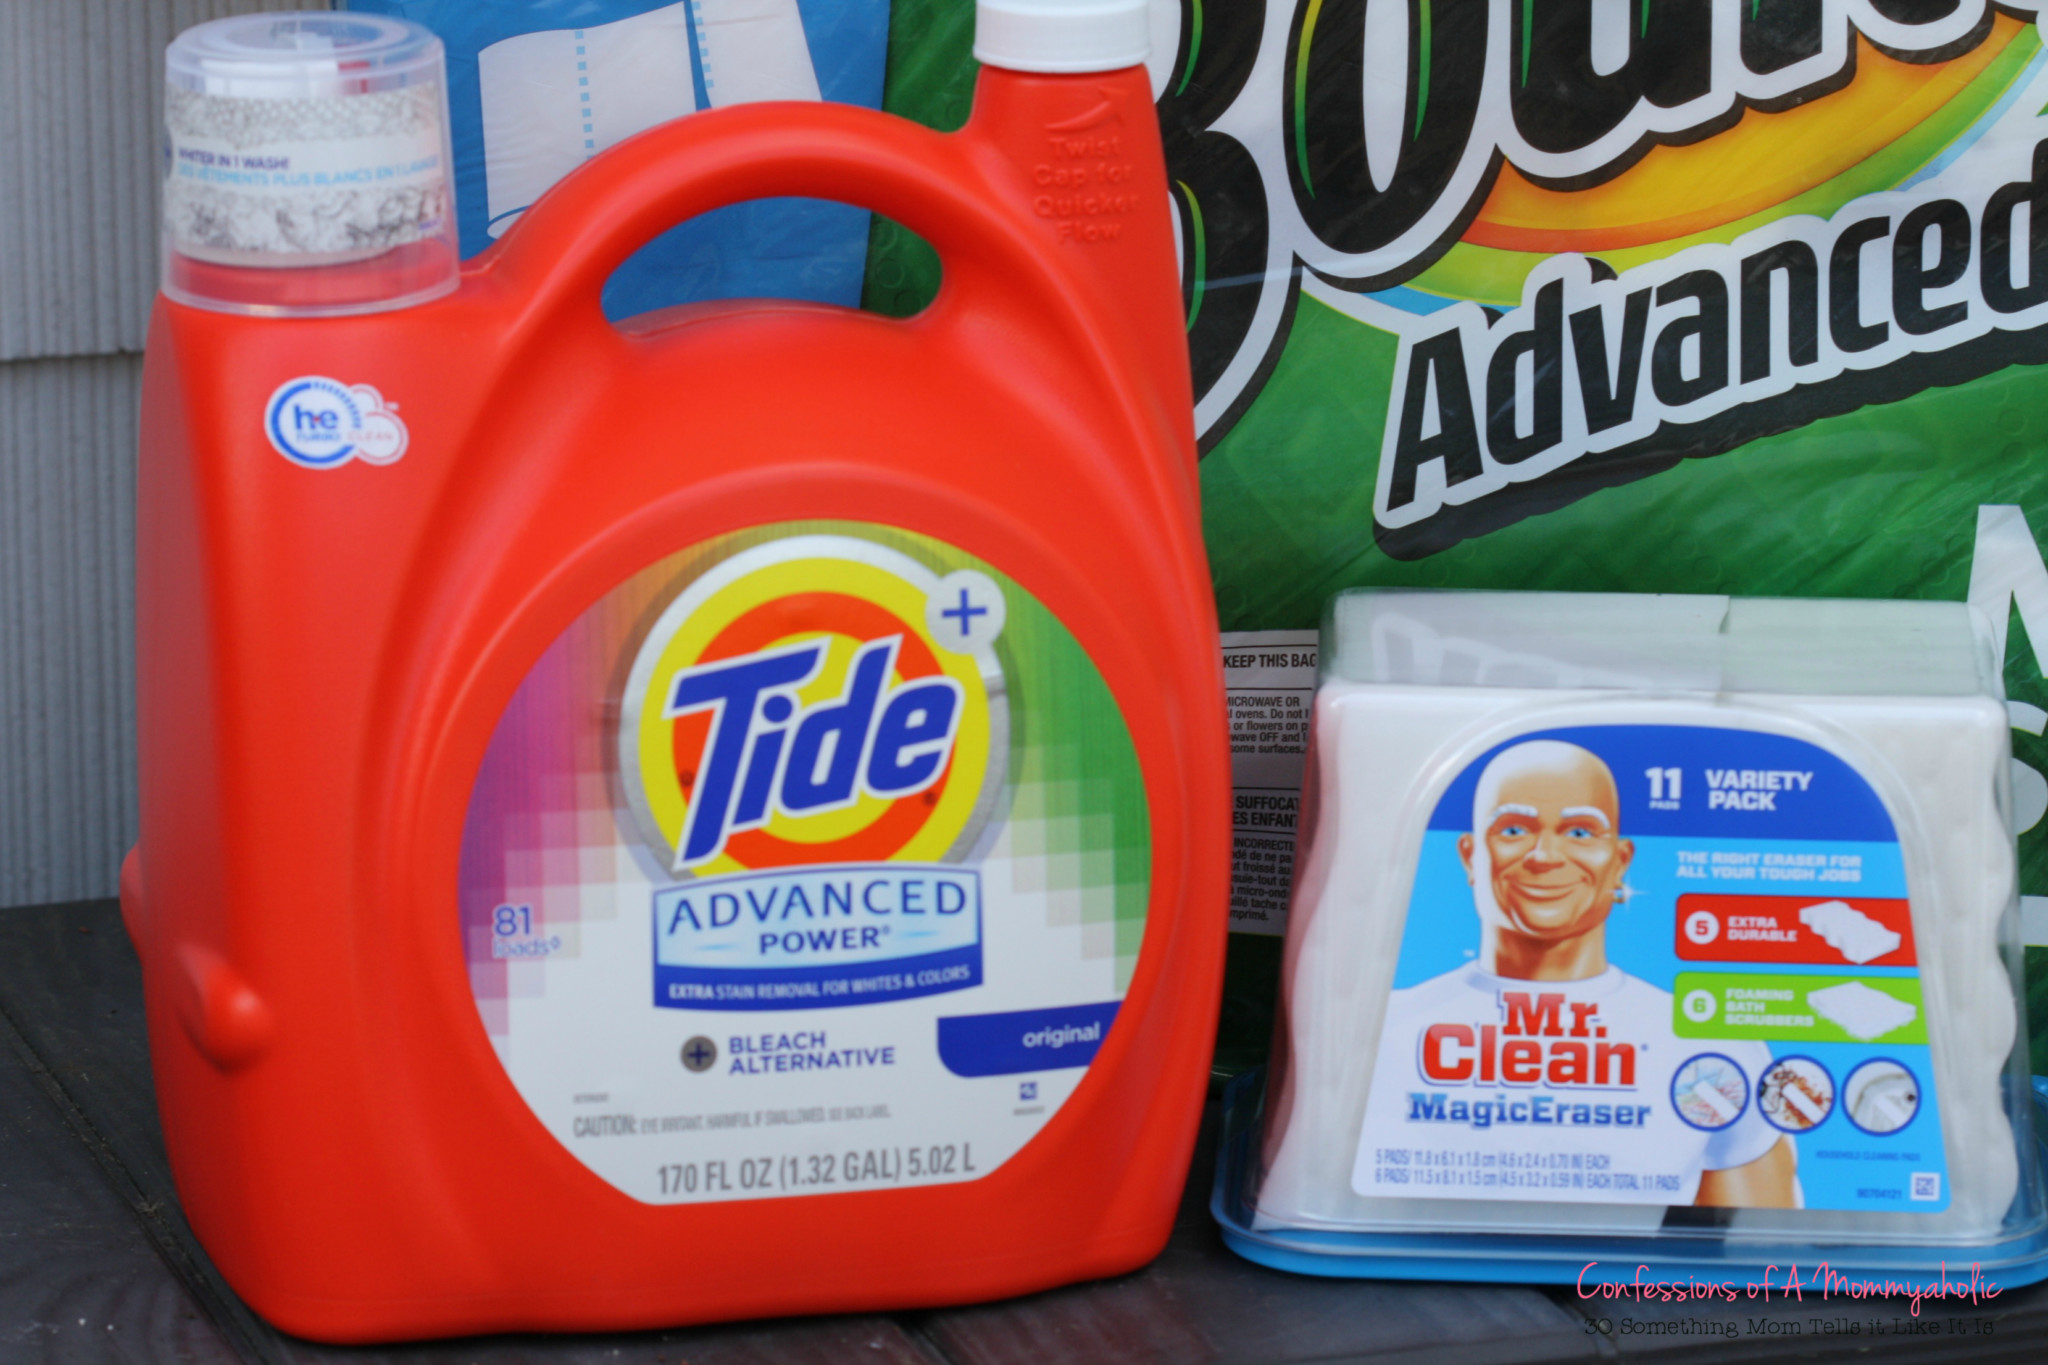 Tide Advanced Power